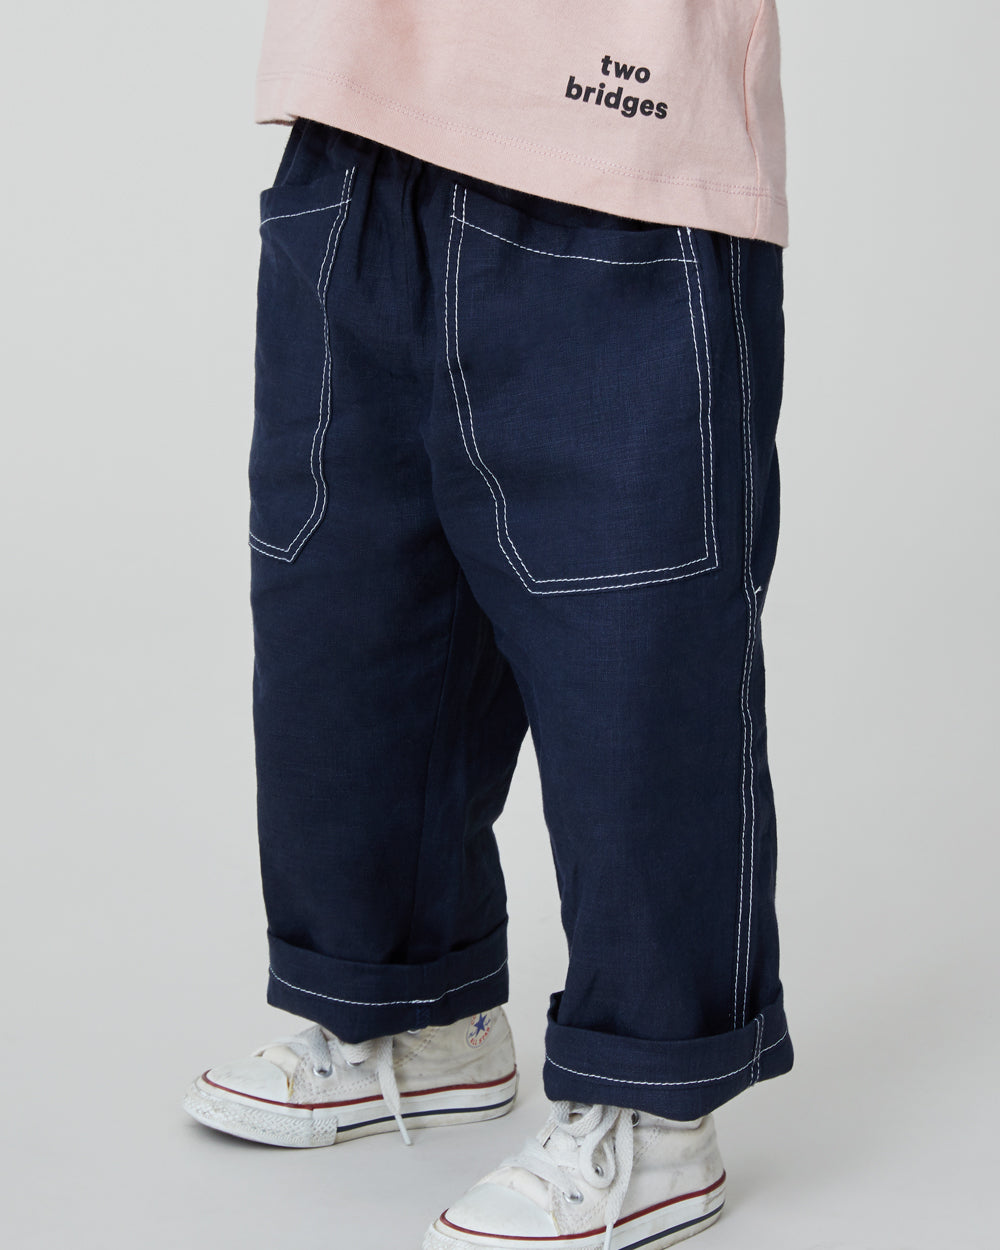 Chatham Trouser in Navy Black